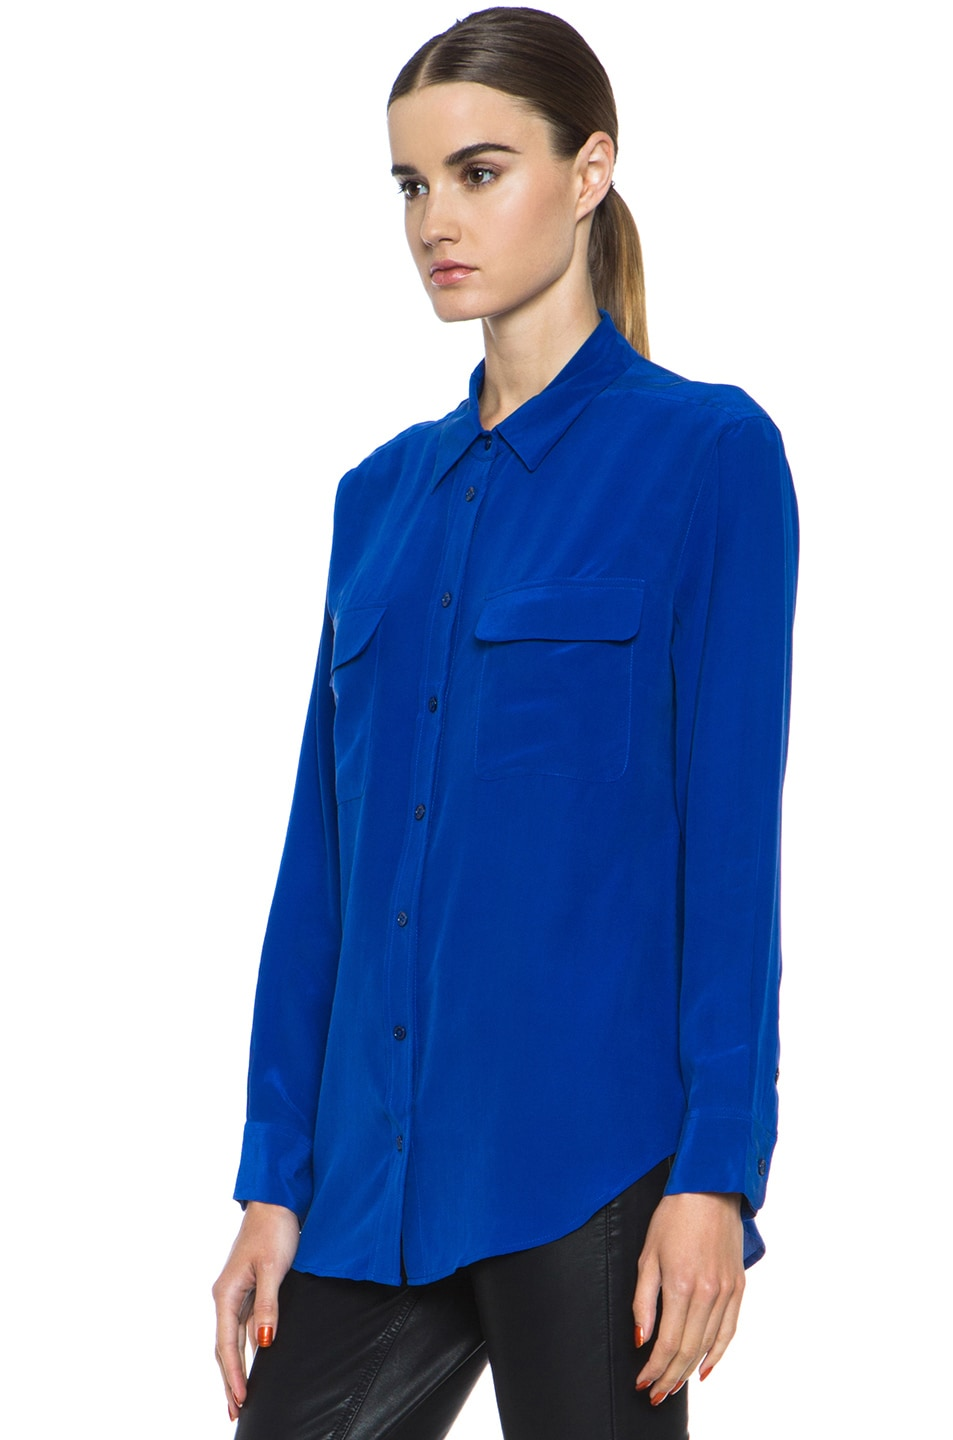 Image 2 of Equipment Signature Blouse in Mazarine Blue